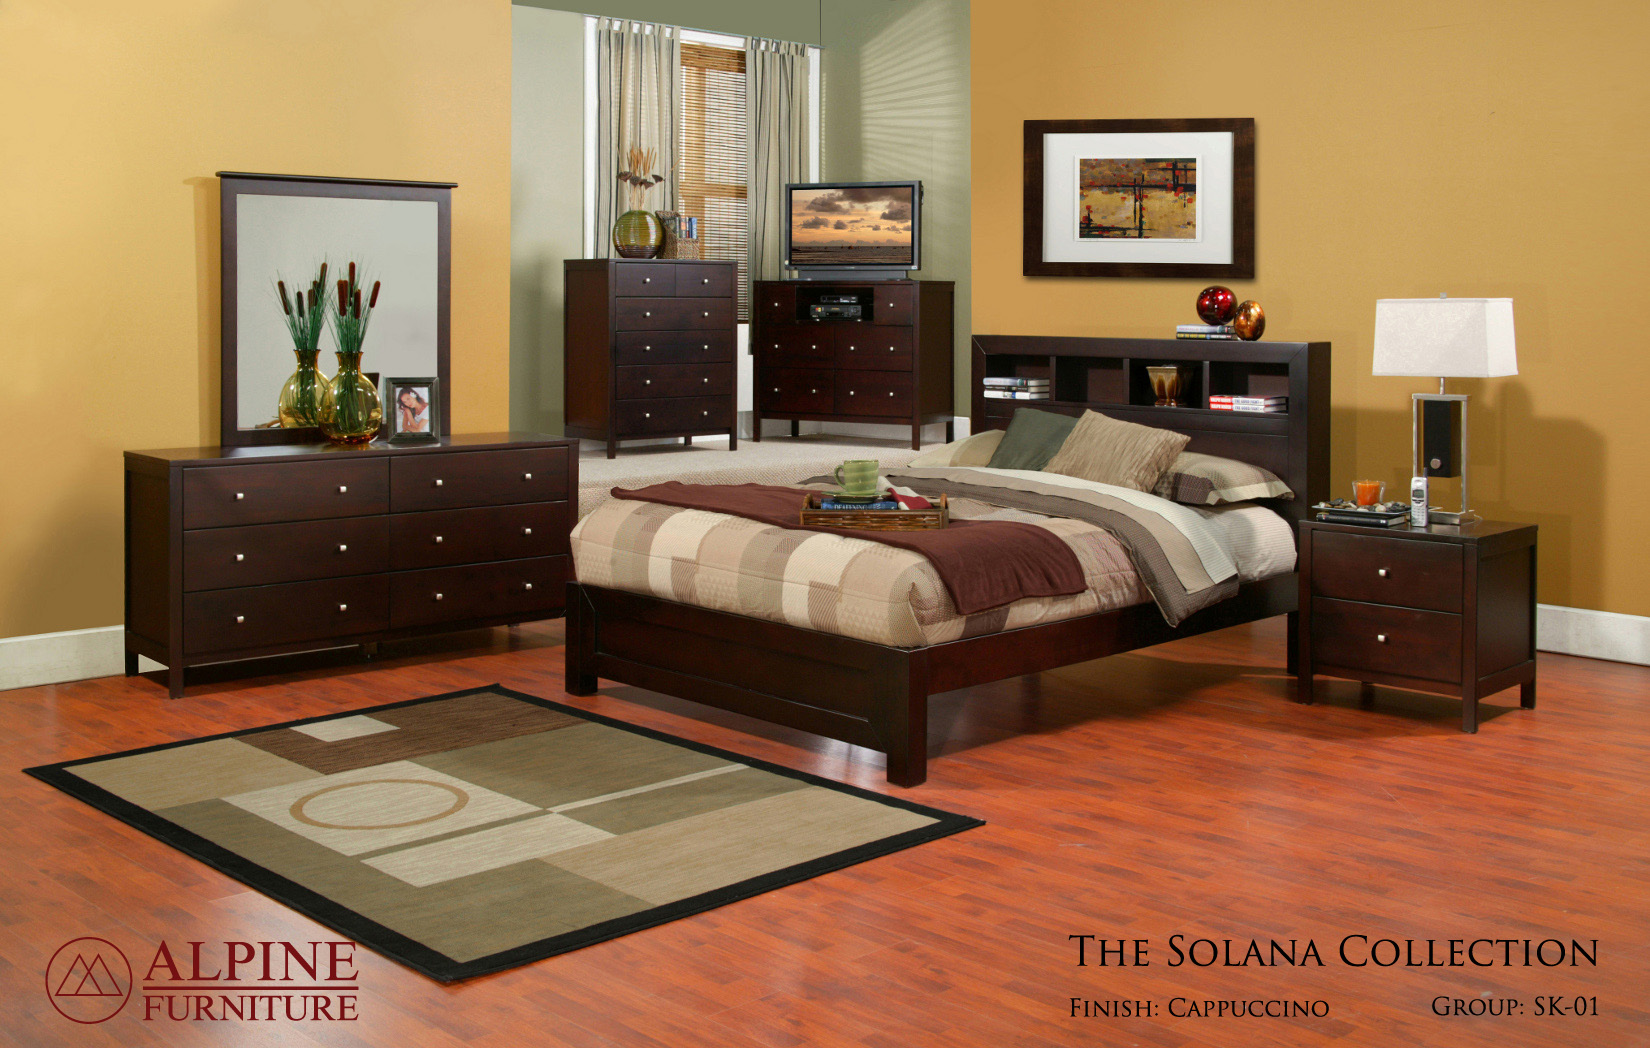 Solana Bedroom Collection Group Sk Customer Support